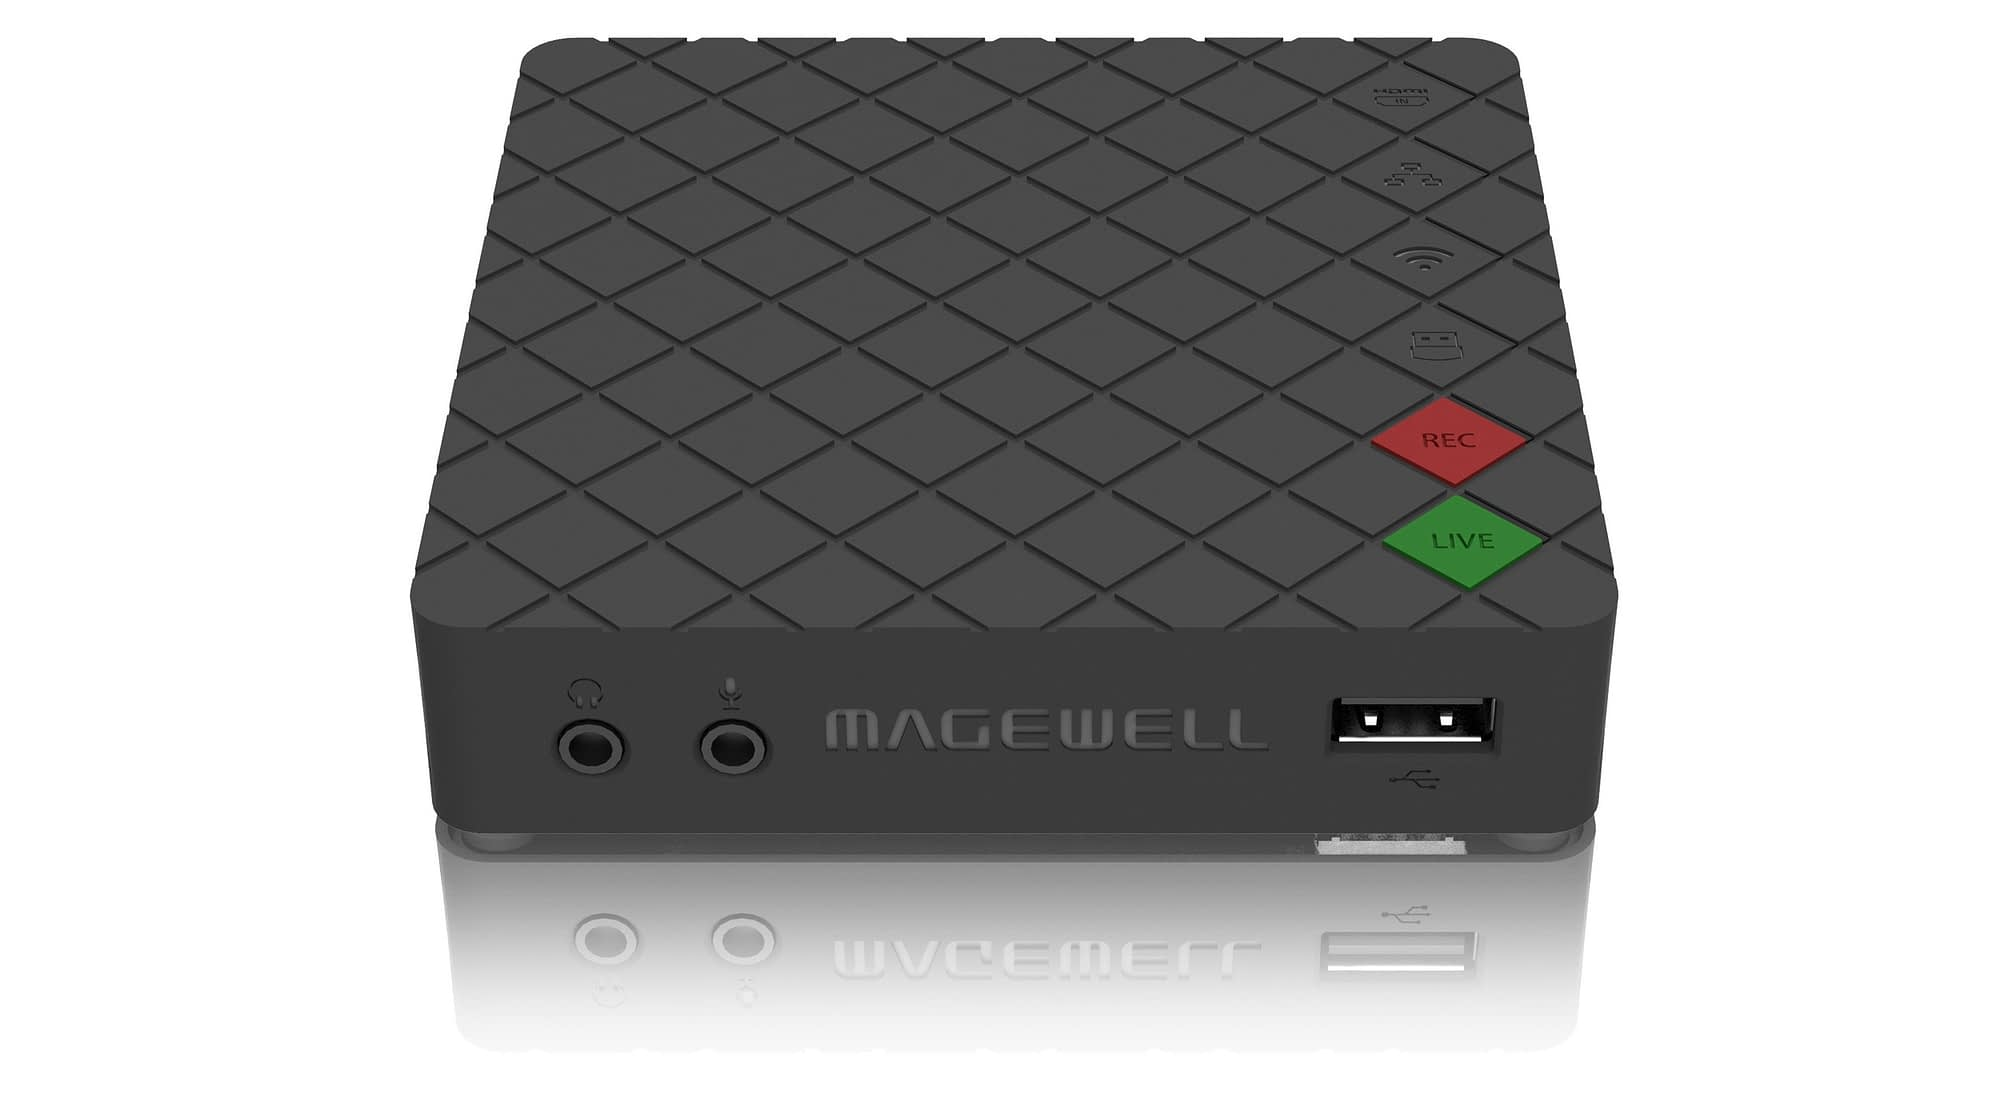 Magewell Ultra Stream HDMI Front View